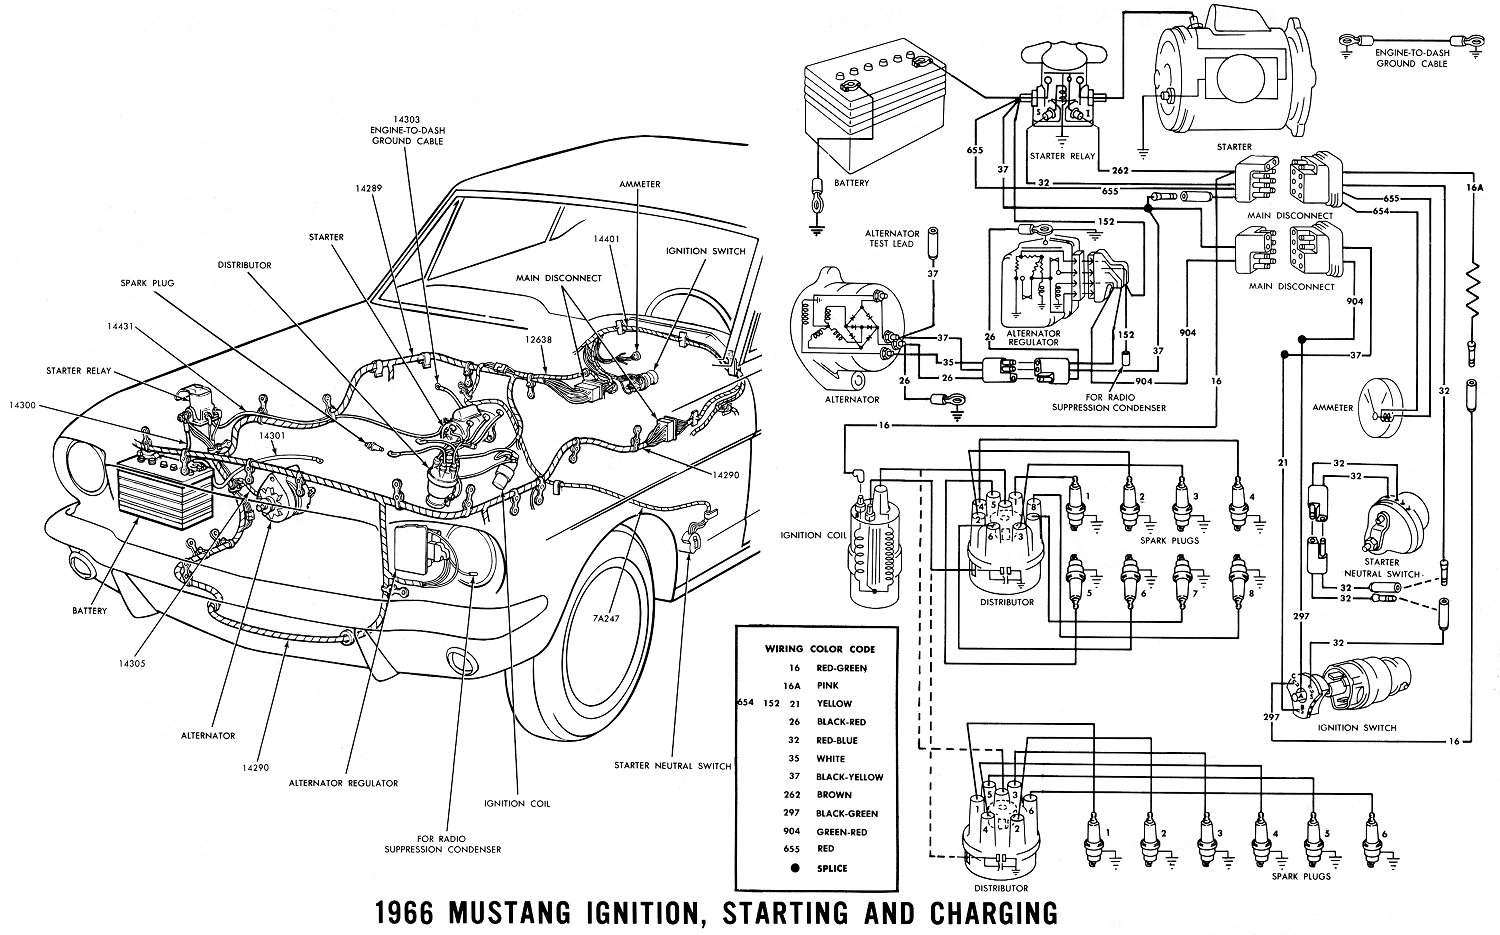 1966 mustang wiring diagrams average joe restoration  66 mustang wiring diagram schematic #4